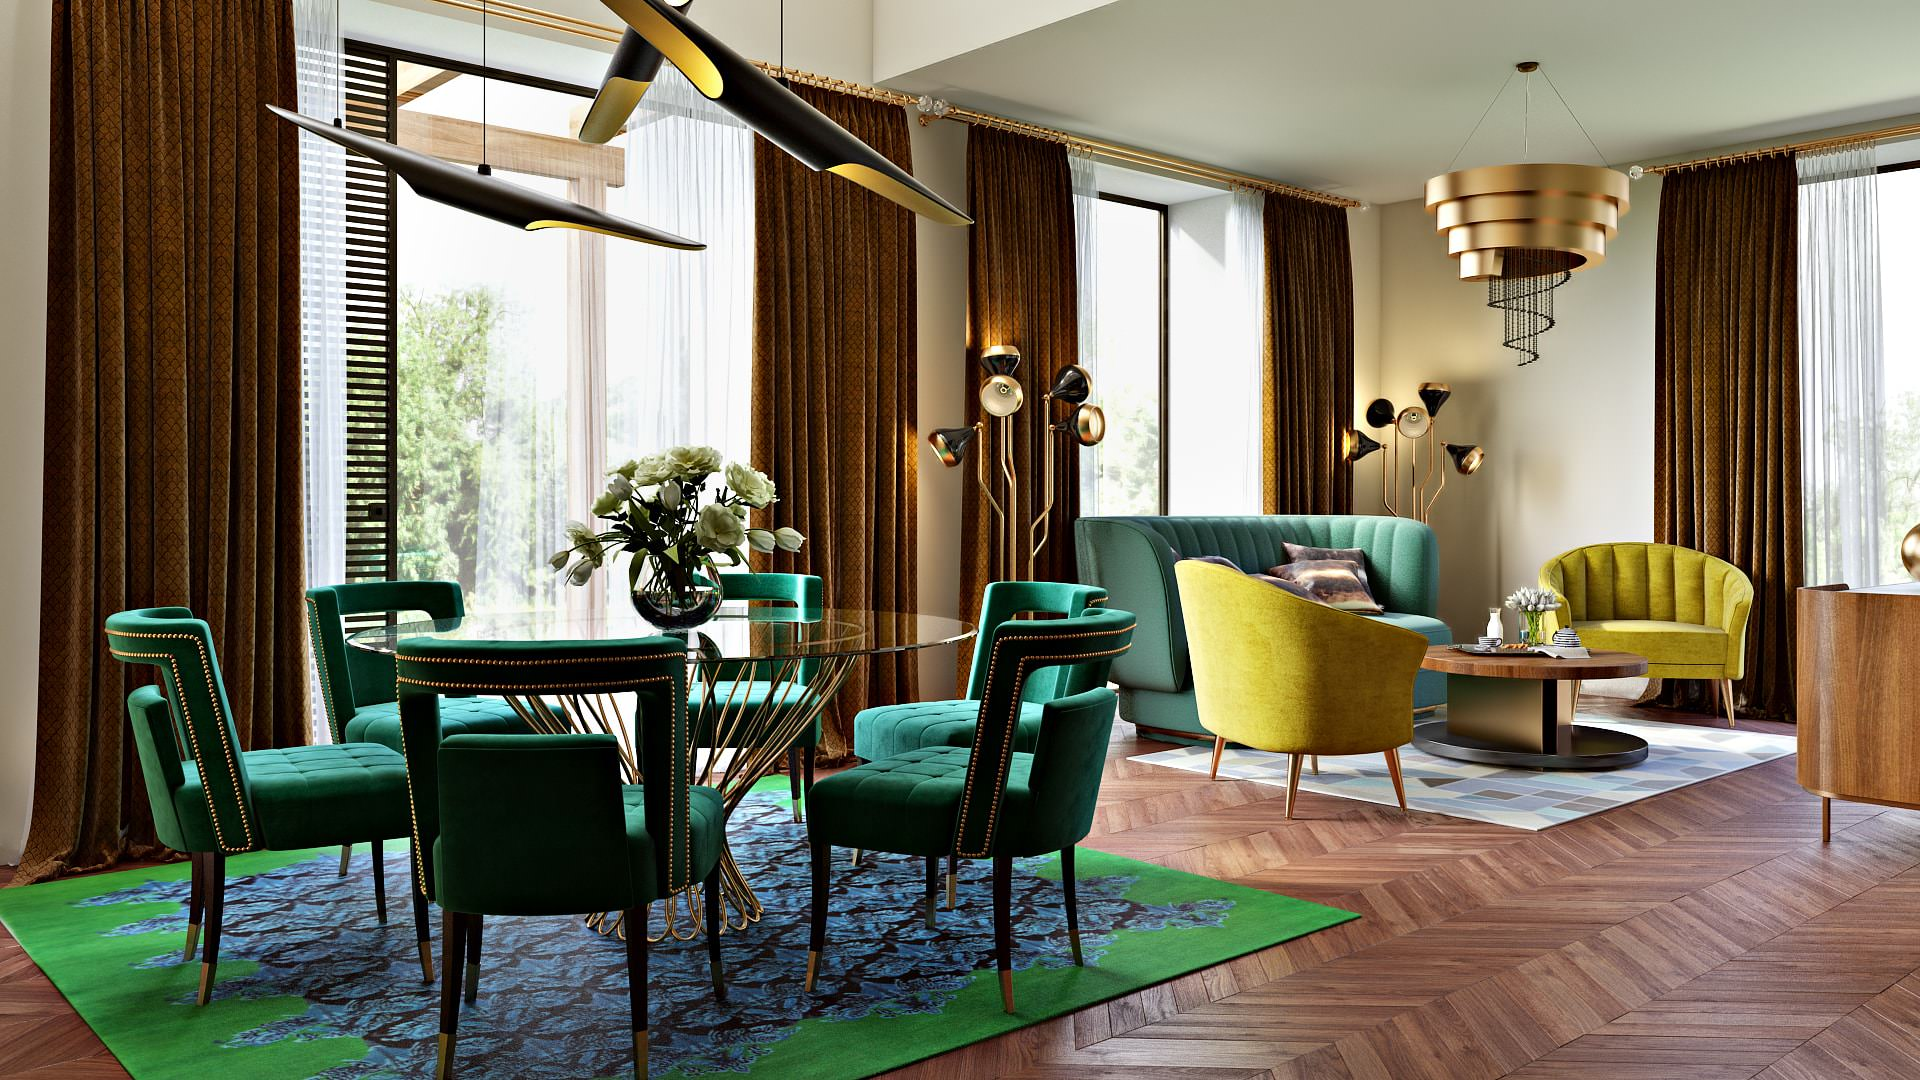 Photoreal Interior Design Renderings For Commercial Project With Green And Yellow